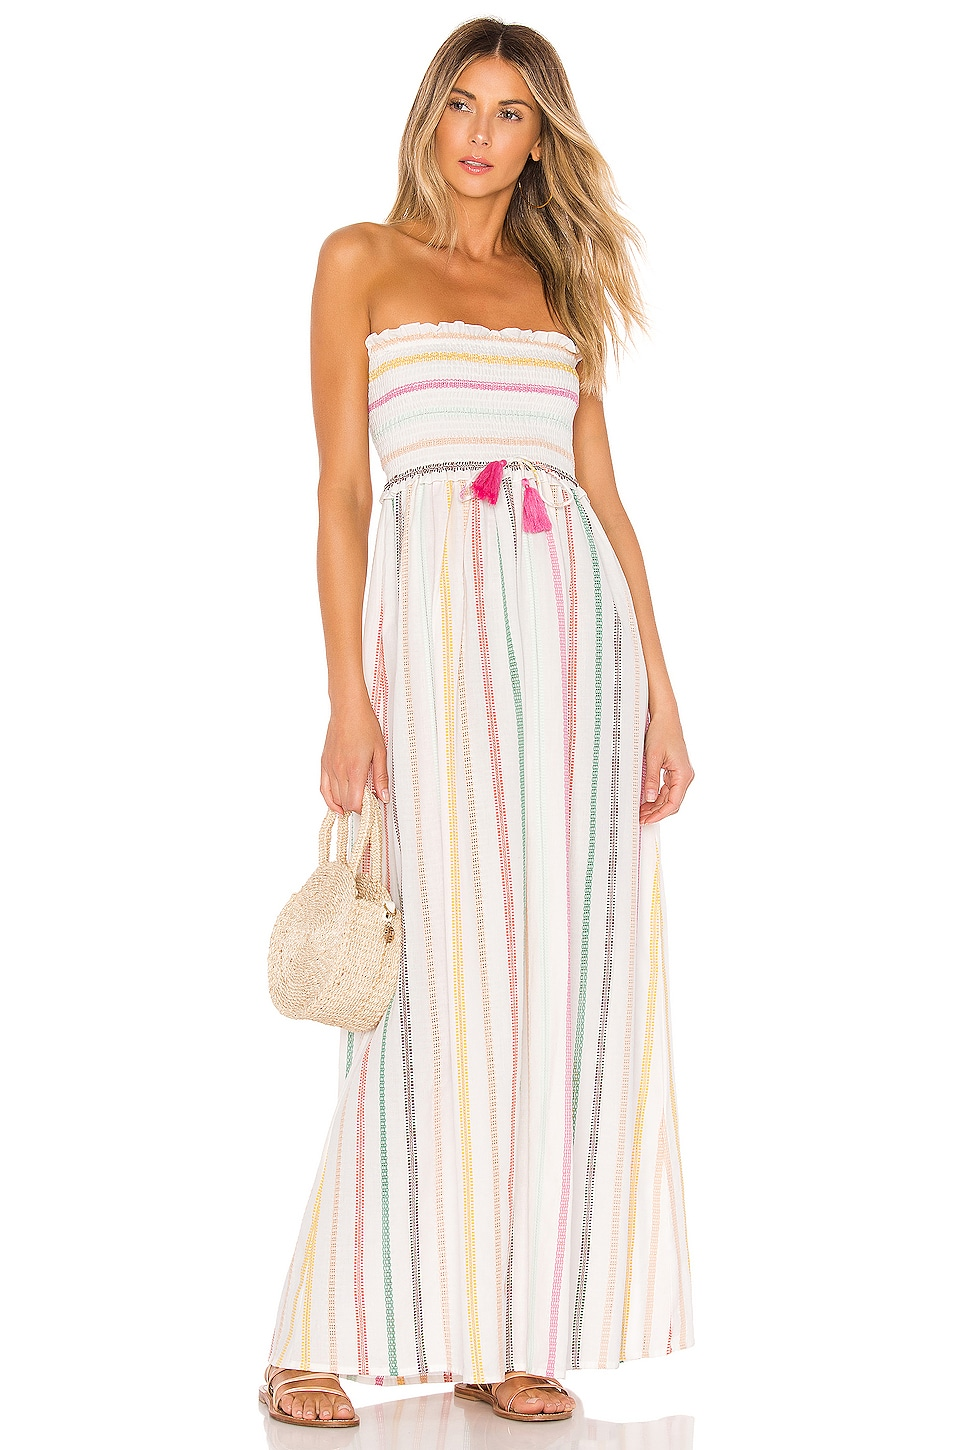 PILYQ Stephanie Dress in Multi Stripe